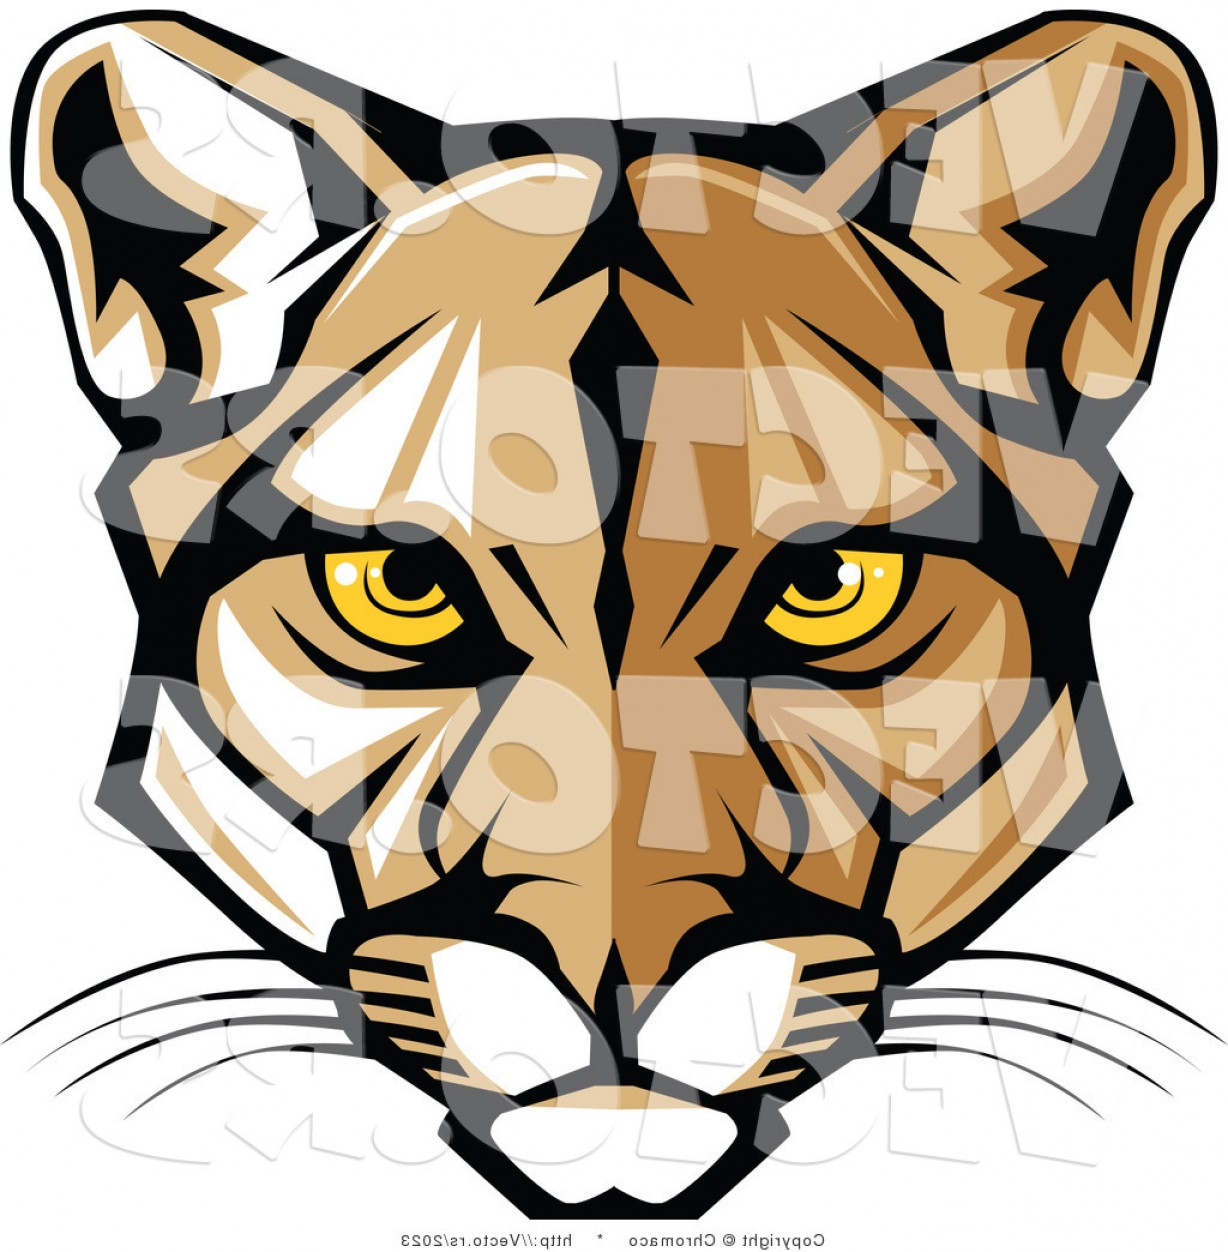 Cougar Logo Vector: Vector Of A Cartoon Cougar Face With Yellow Eyes By Chromaco